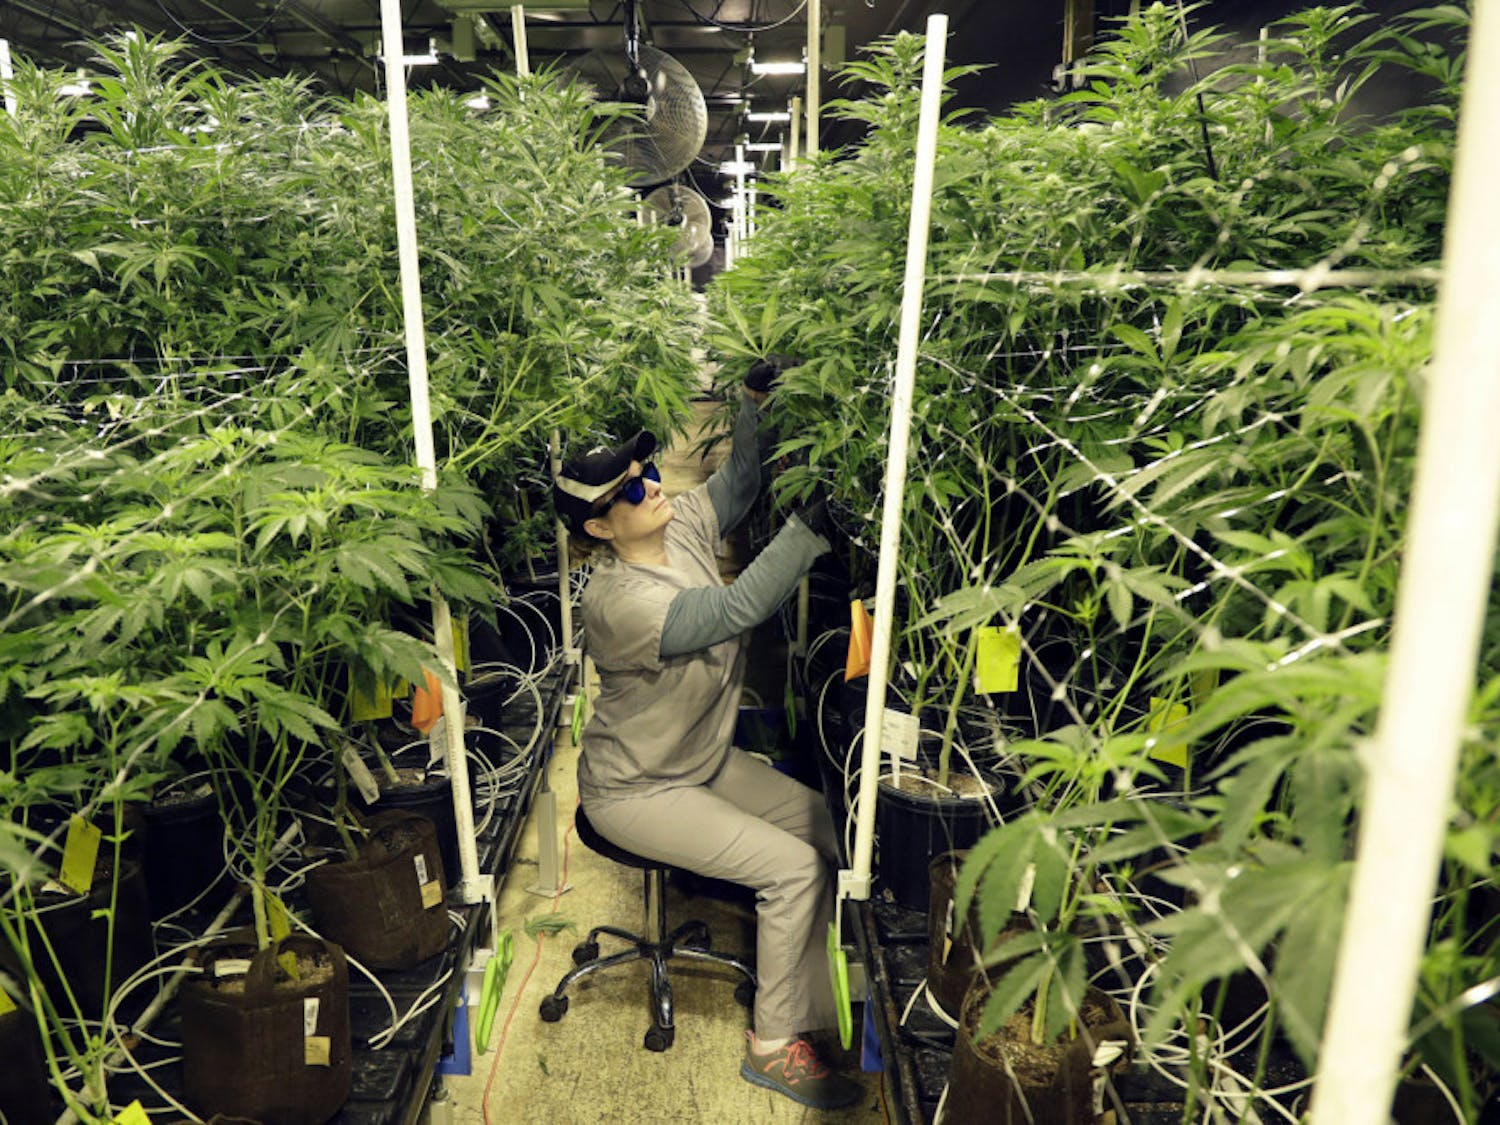 FILE - In this March 22, 2019 file photo, Heather Randazzo, a grow employee at Compassionate Care Foundation's medical marijuana dispensary, trims leaves off marijuana plants in the company's grow house in Egg Harbor Township, N.J. New Jersey legislative leaders unveiled a proposed ballot question Monday, Nov. 18, that would ask voters whether the state should legalize recreational marijuana. (AP Photo/Julio Cortez, File)